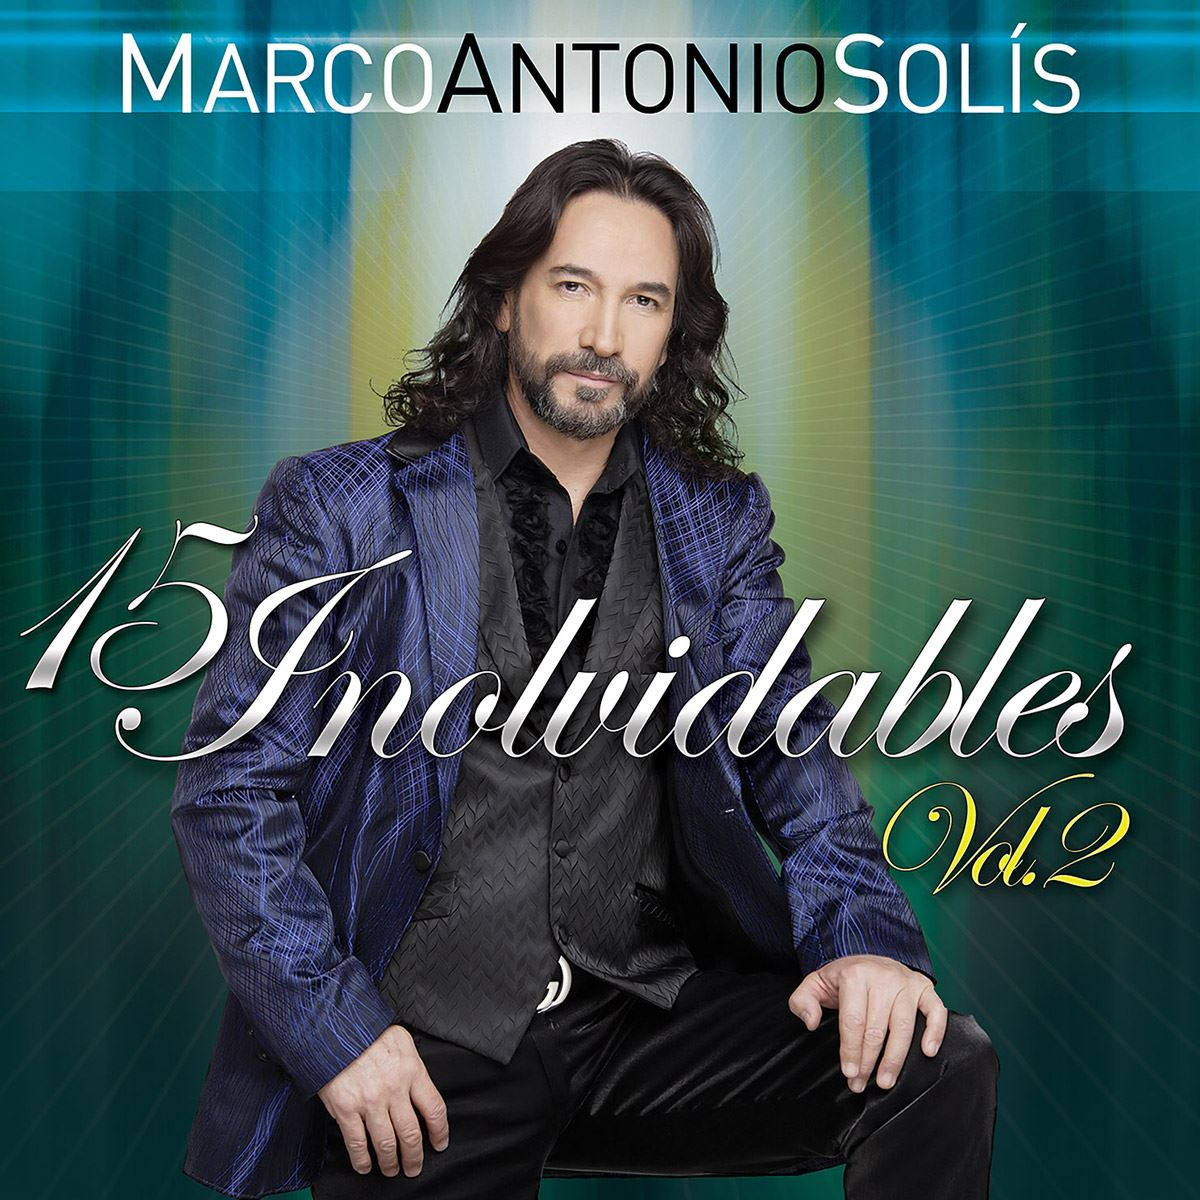 Cd marco antonio solis 15 inolvidables vol. 2  - Sanborns